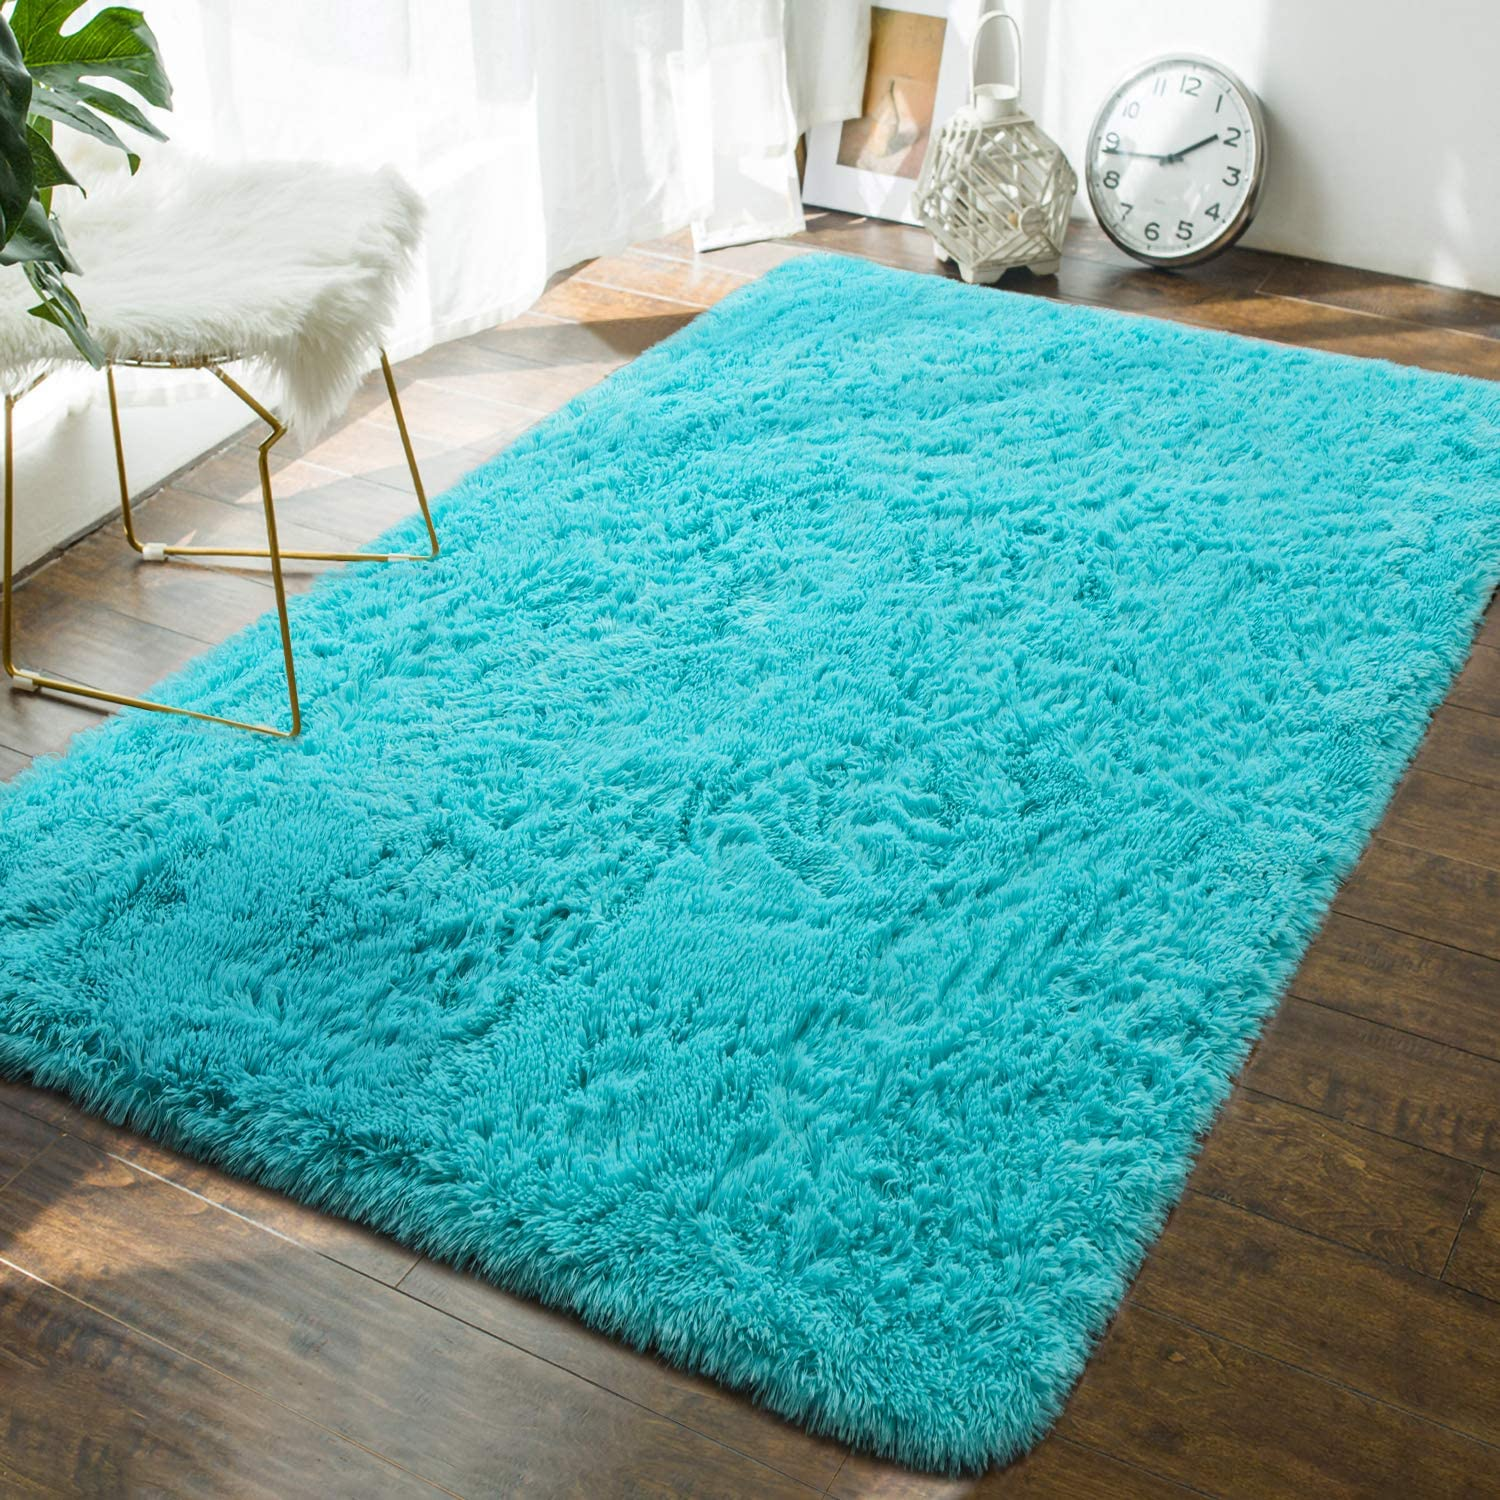 Andecor Soft Fluffy Bedroom Rugs - 4 x 6 Feet Indoor Shaggy Plush Area Rug for Boys Girls Kids Baby College Dorm Living Room Home Decor Floor Carpet, Teal Blue